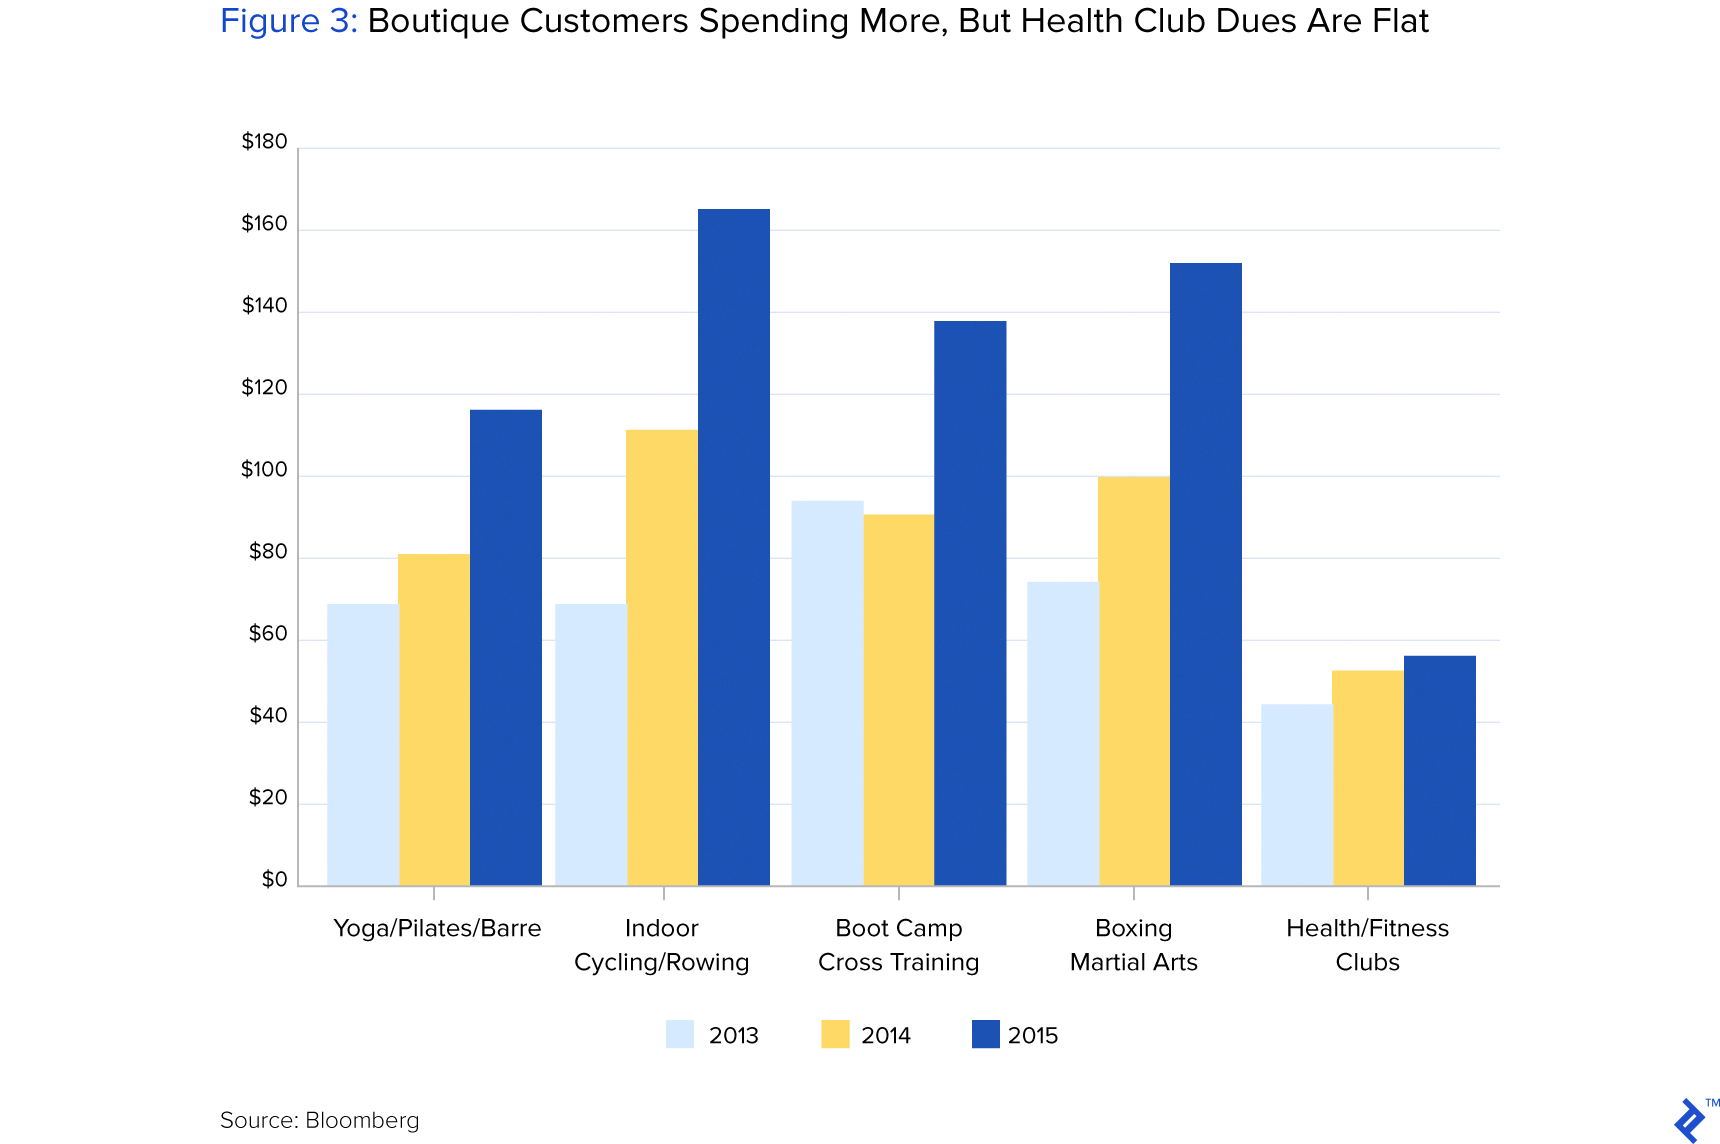 Figure 3: Boutique Customers Spending More, but Health Club Dues Are Flat